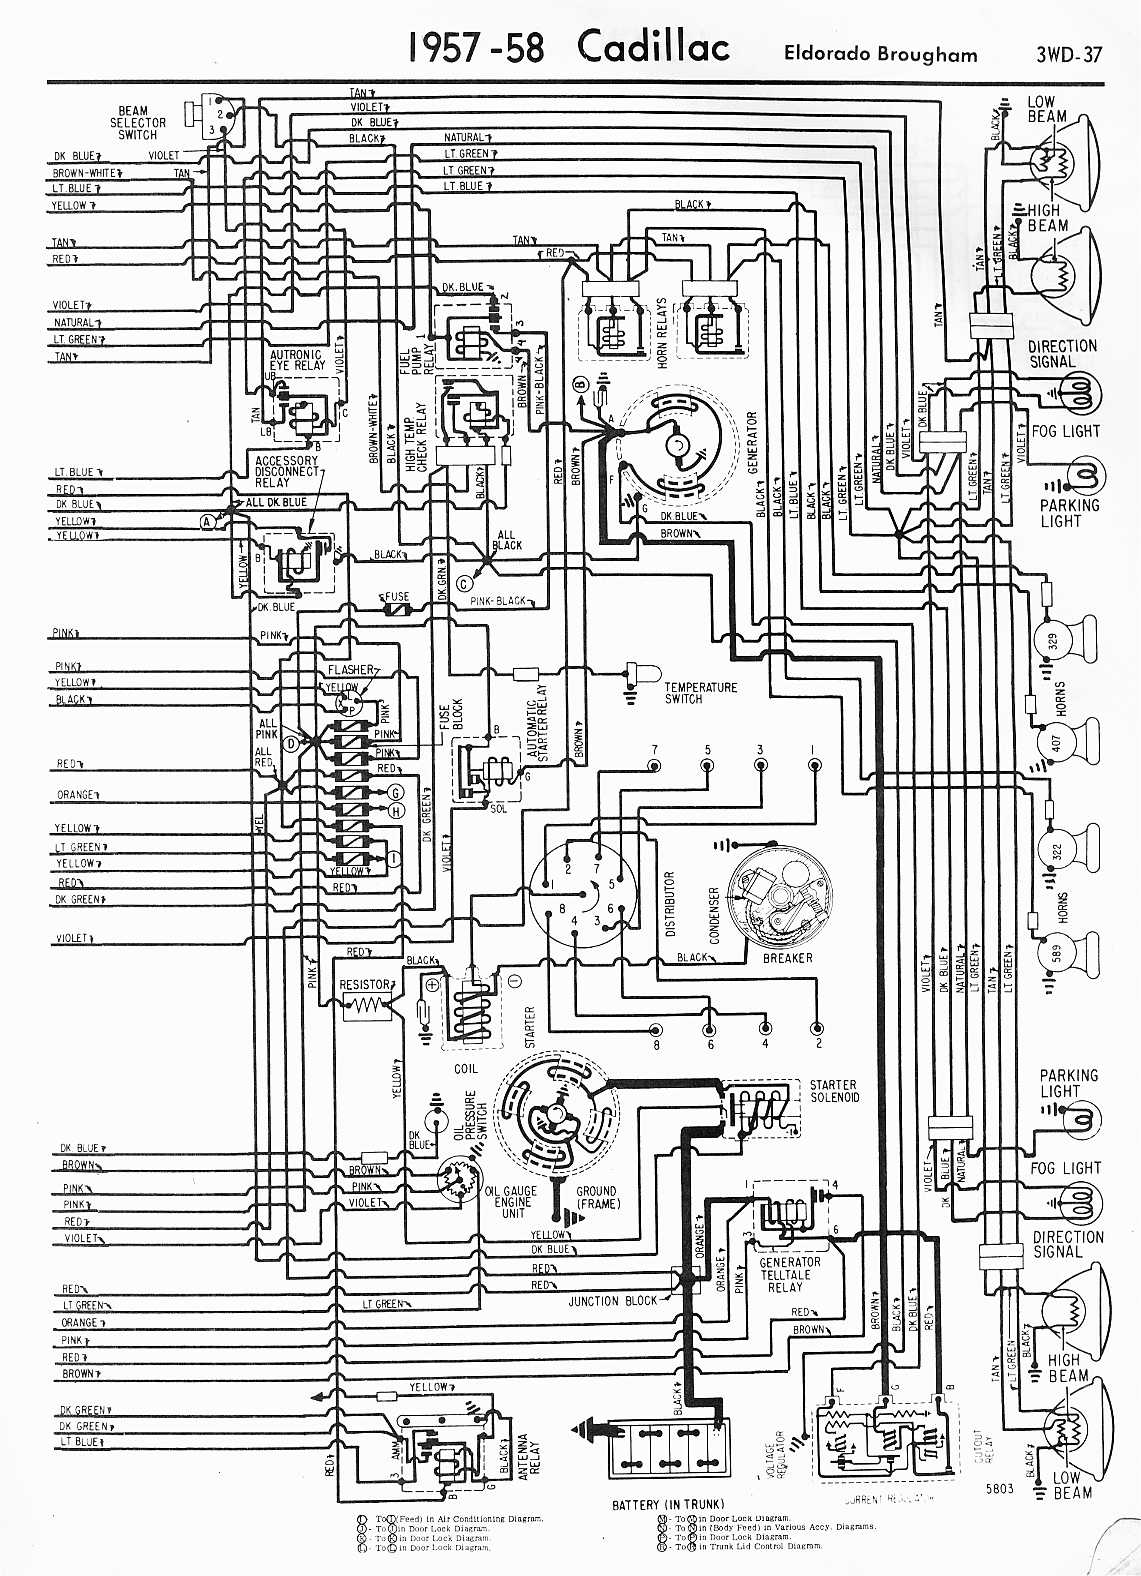 Cadillac Wiring Diagrams: 1957-1965